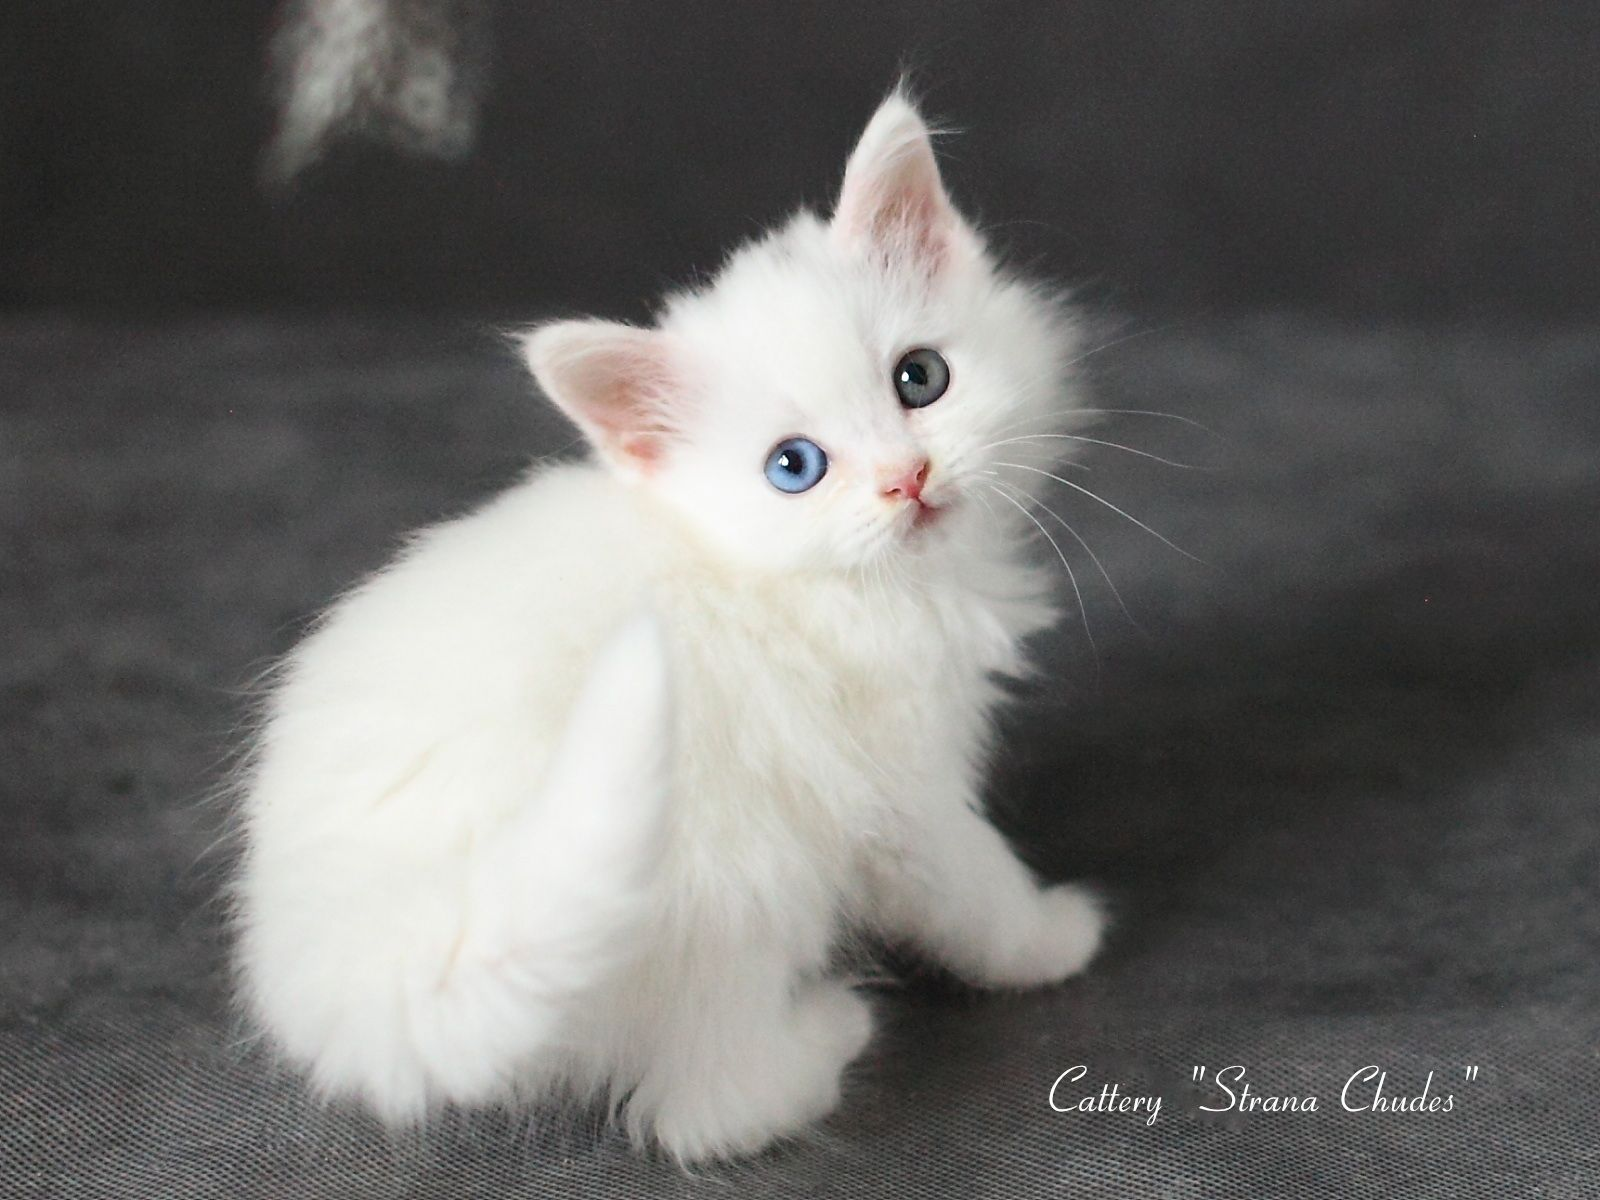 Russian Siberian Beautiful Cute White Kitten For Sale Yanta Strana Chudes Odd Eyes Female B D 2 July 2017 White Kittens Beautiful Kittens Cats And Kittens